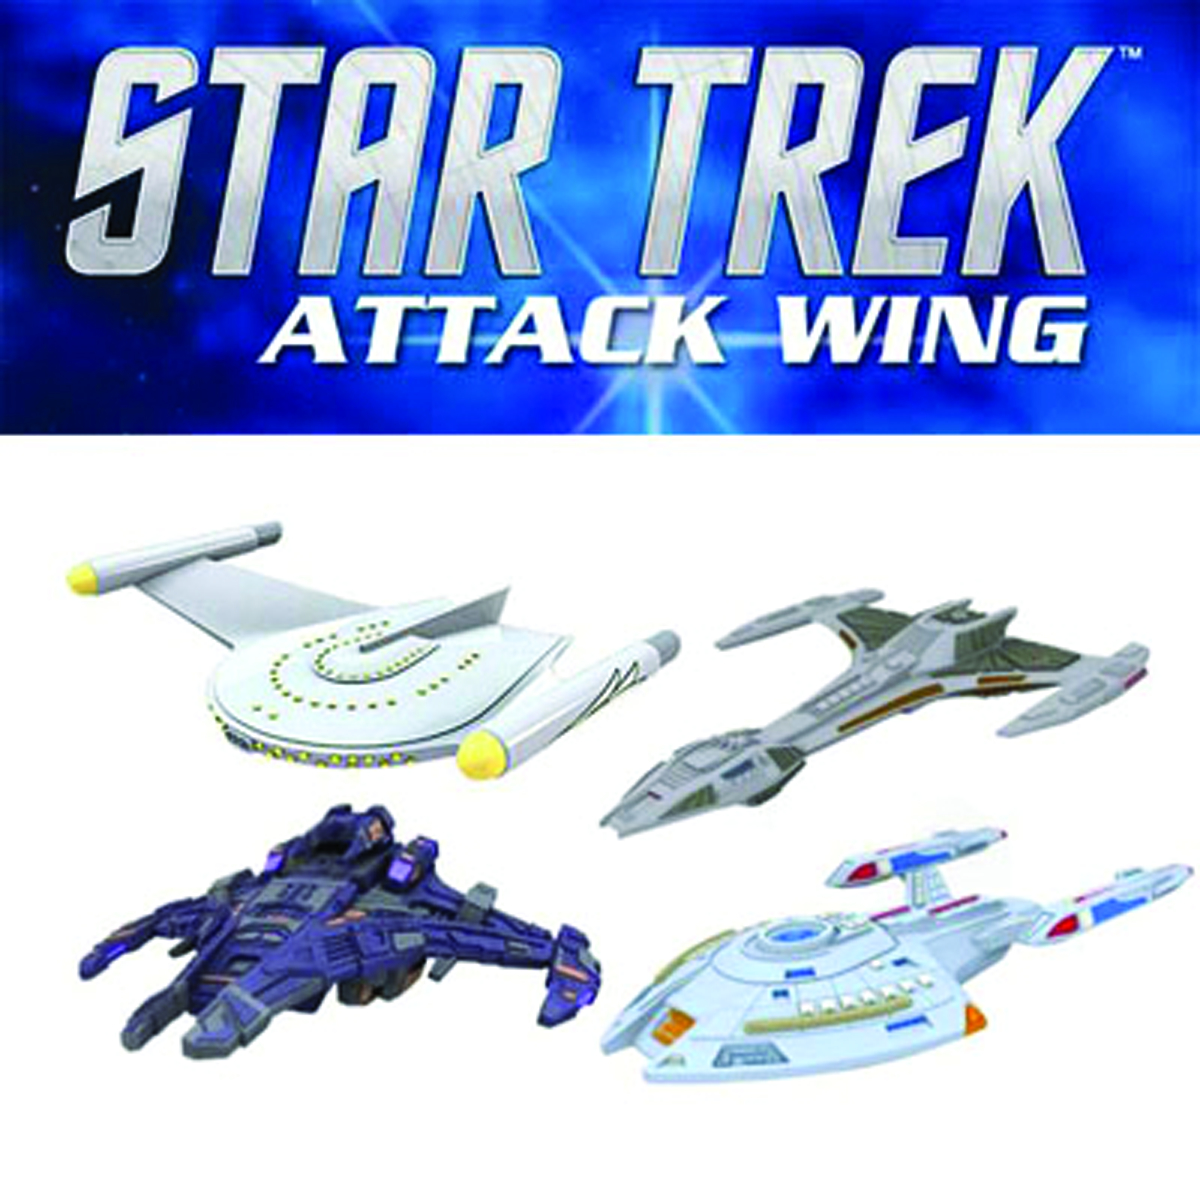 STAR TREK ATTACK WING EQUINOX EXP